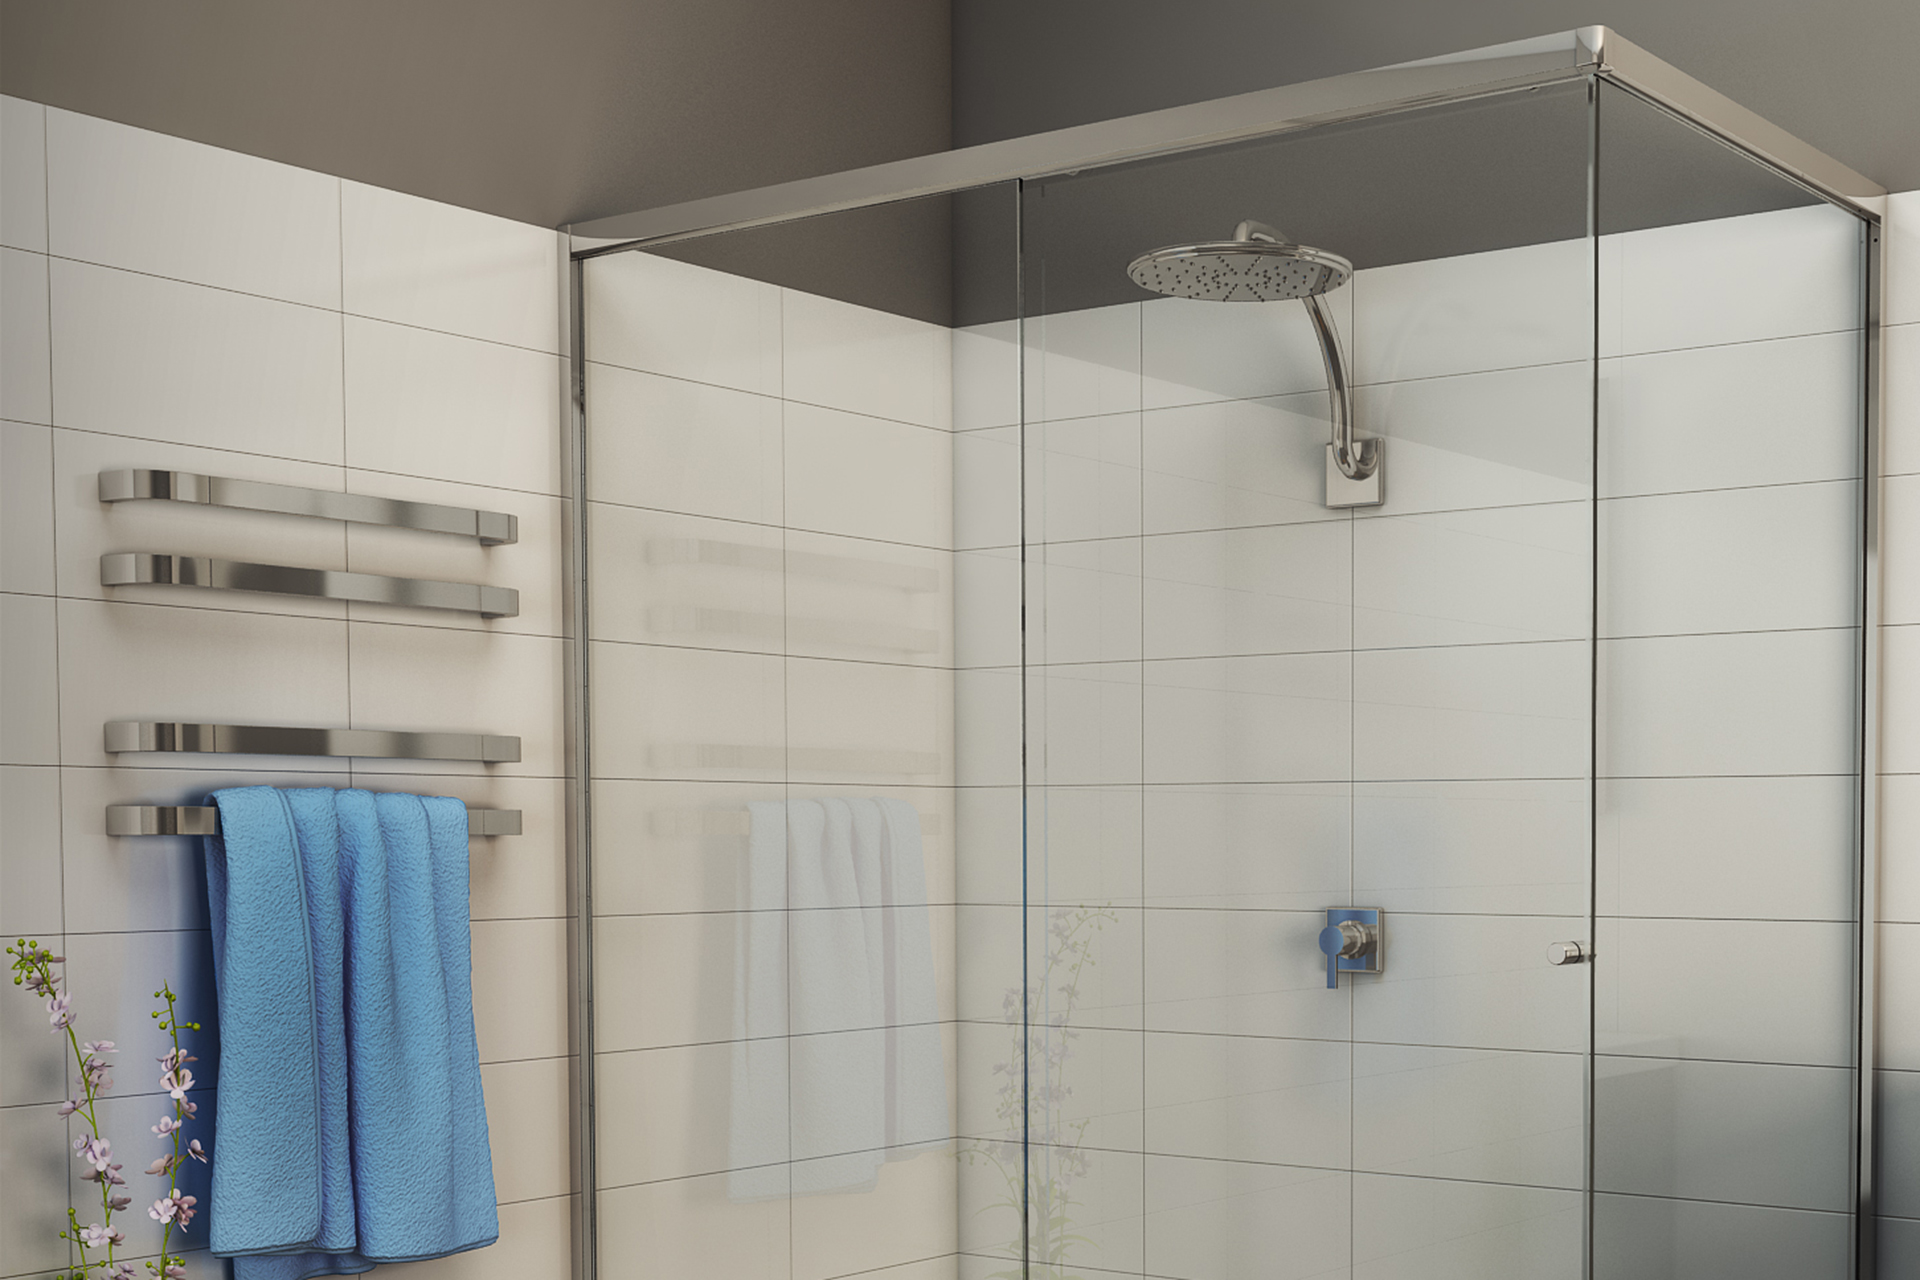 semi frameless sliding shower system available in kit form